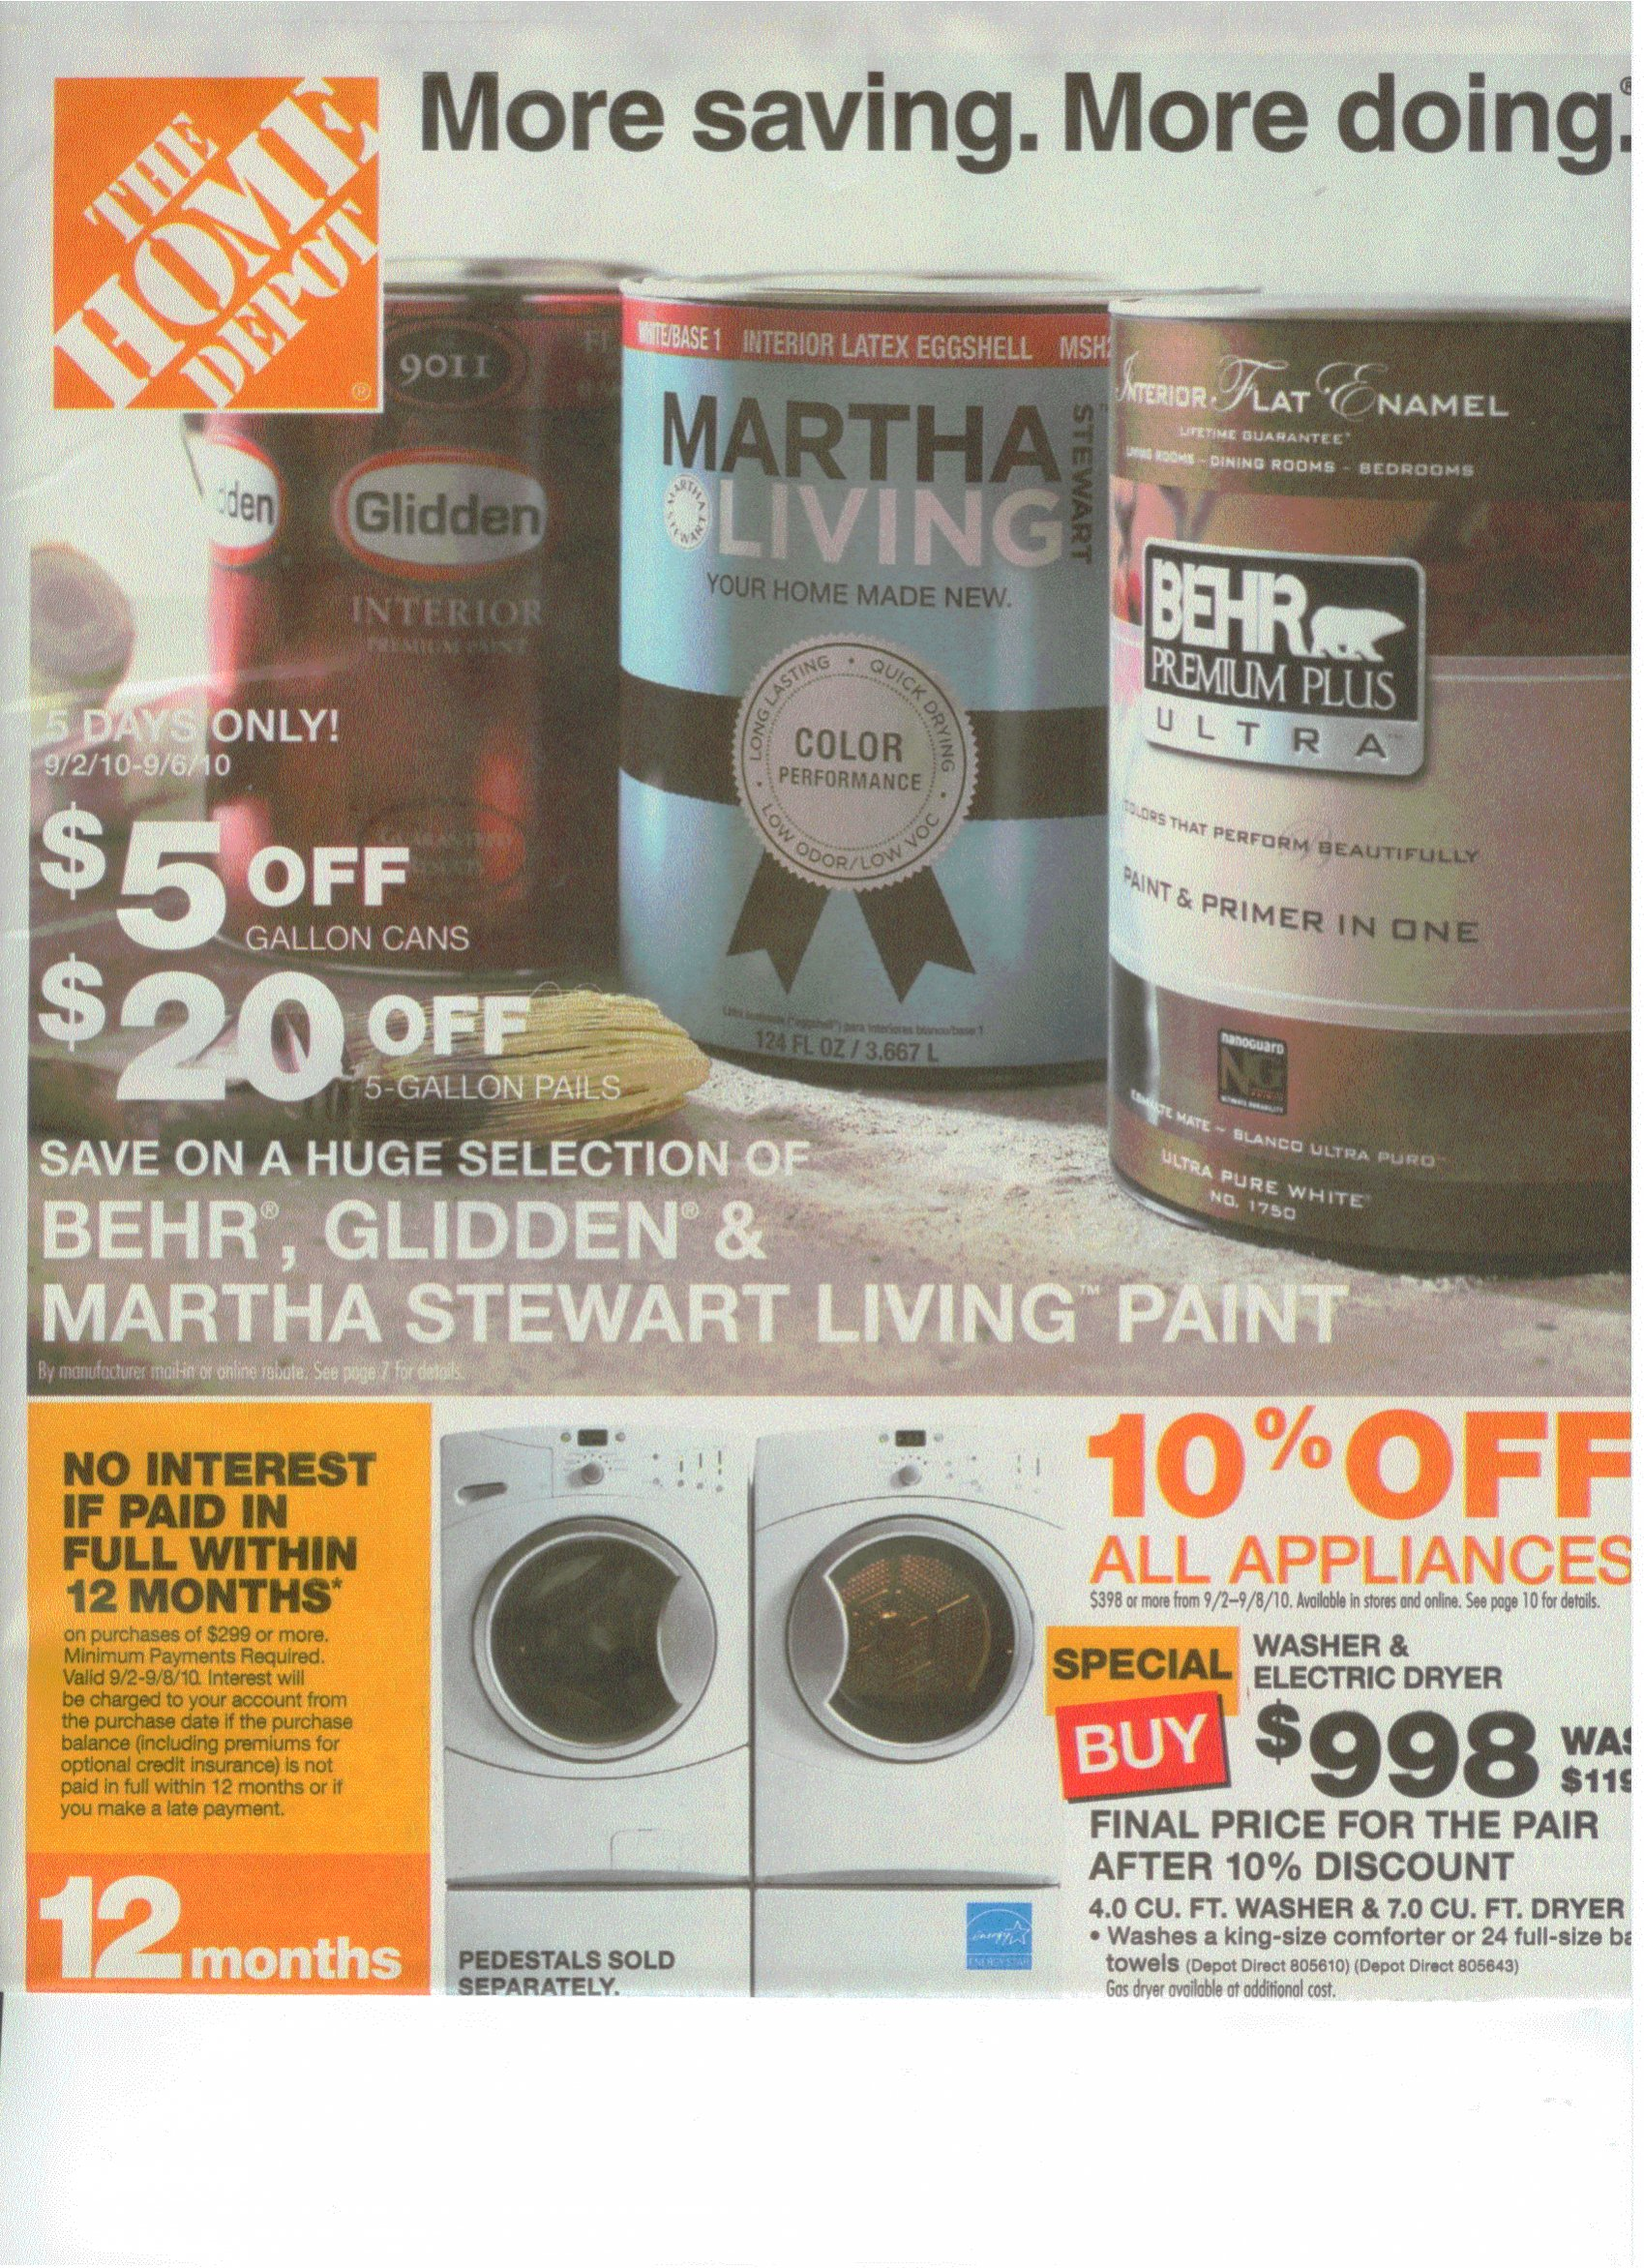 Home Depot Labor Day Sale Ad Saving The Family Money